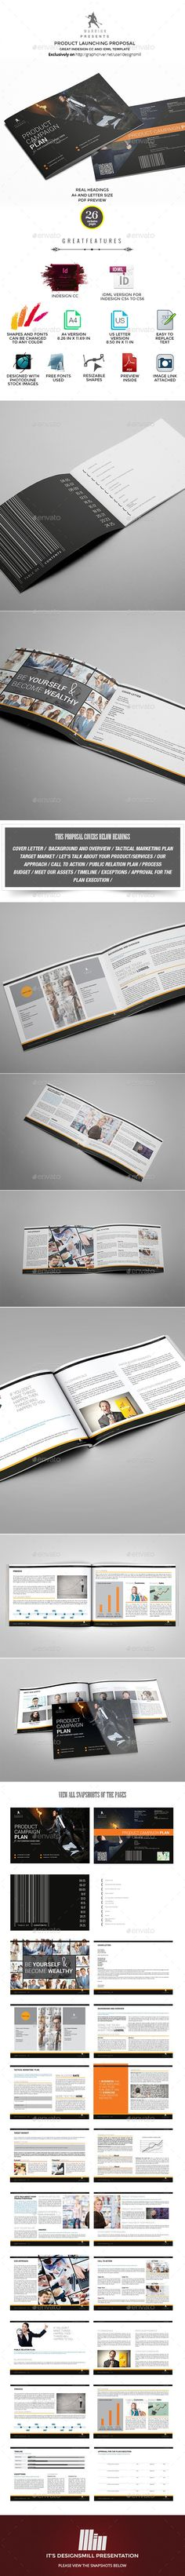 Three Rings Project Proposal Template Proposal templates - best proposal templates